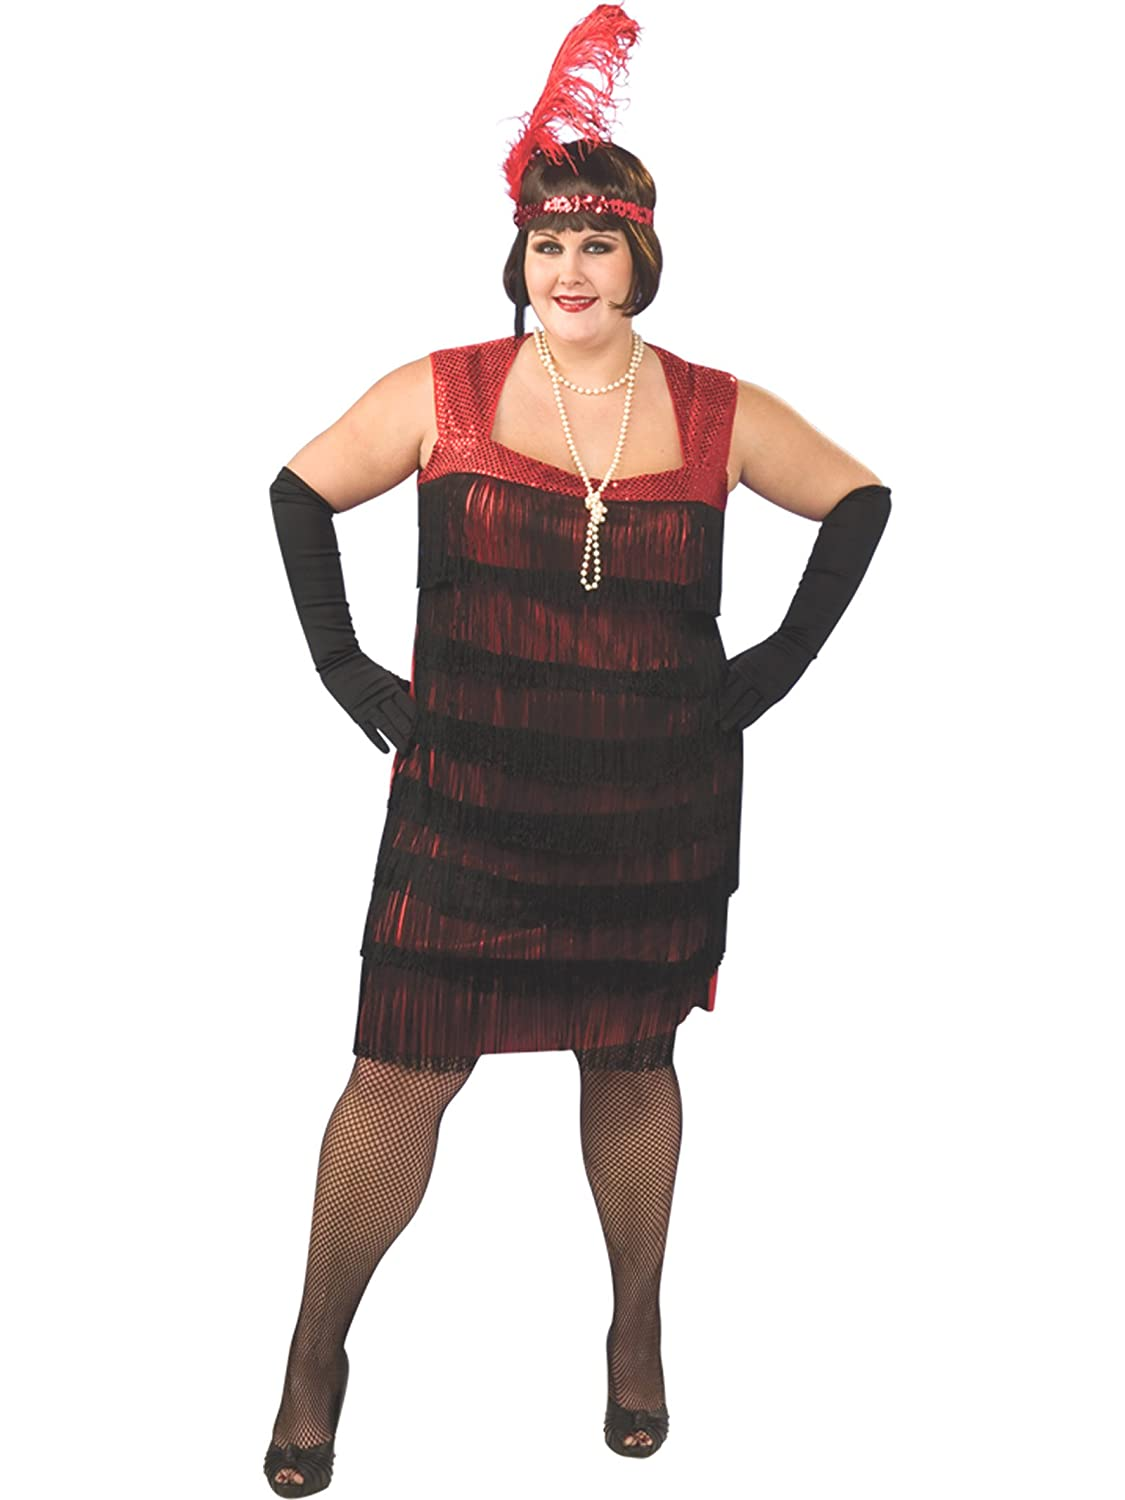 Flapper Costume Plus Size 1920u0027s Dress Dancer Womens Theatrical Costume at Amazon Womenu0027s Clothing store Adult Sized Costumes  sc 1 st  Amazon.com & Flapper Costume Plus Size 1920u0027s Dress Dancer Womens Theatrical ...